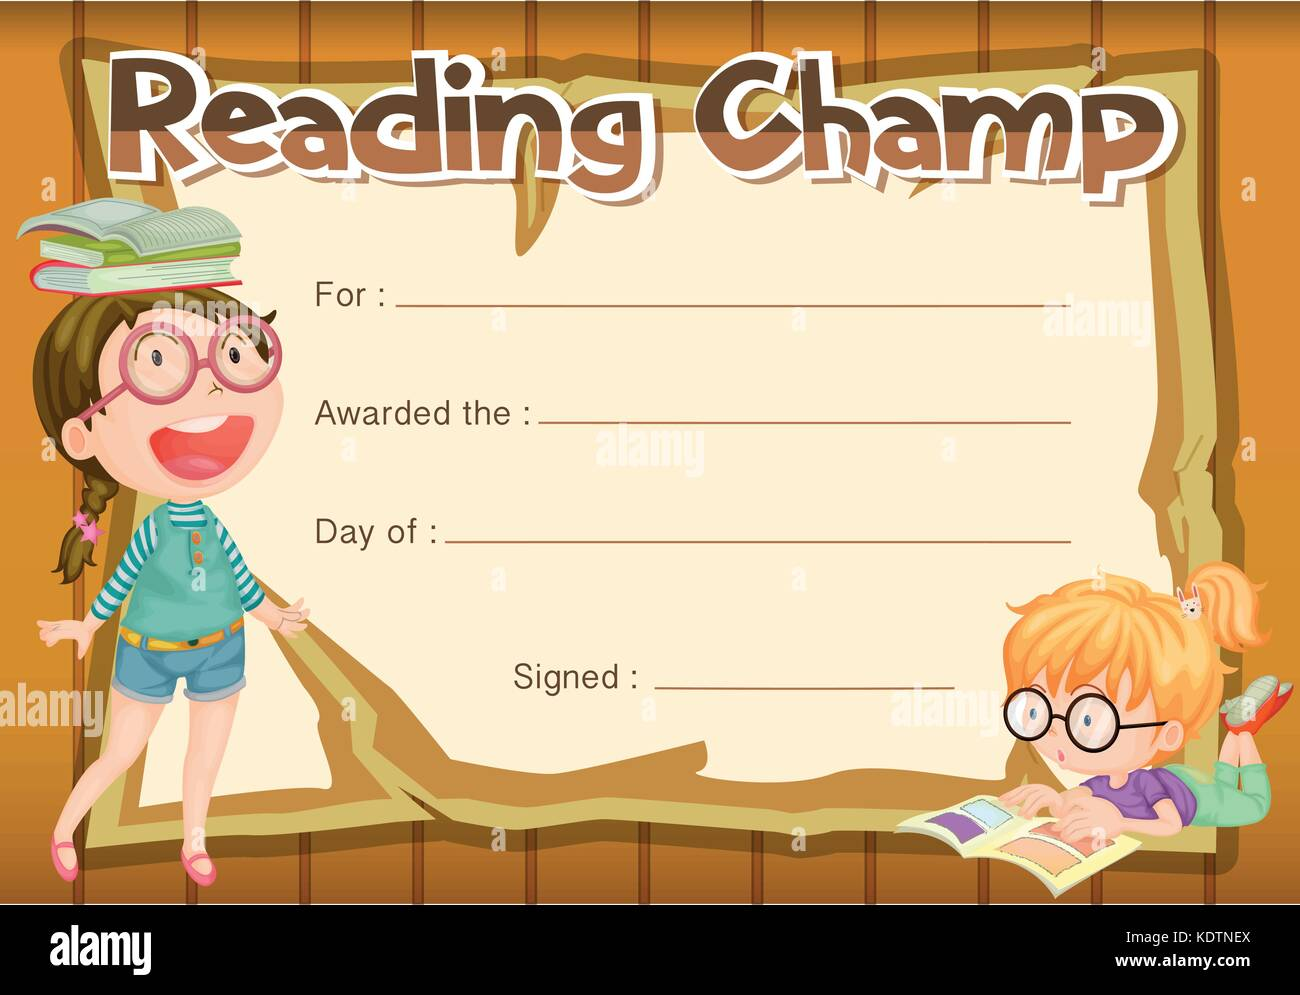 Template school diploma children stock photos template school certificate template for reading champ illustration stock image alramifo Images